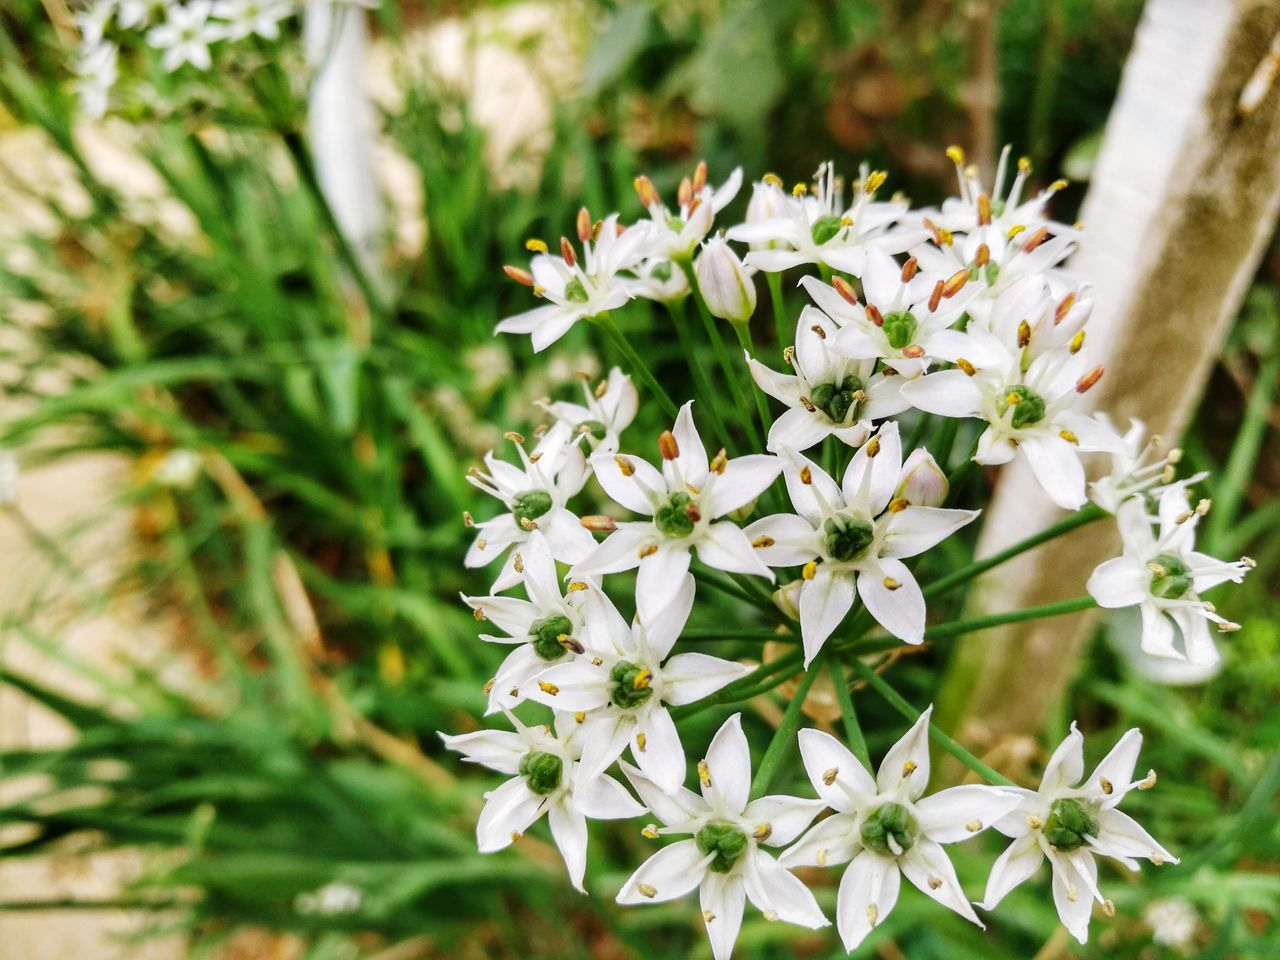 flower, nature, beauty in nature, white color, growth, no people, fragility, day, plant, freshness, outdoors, close-up, blooming, flower head